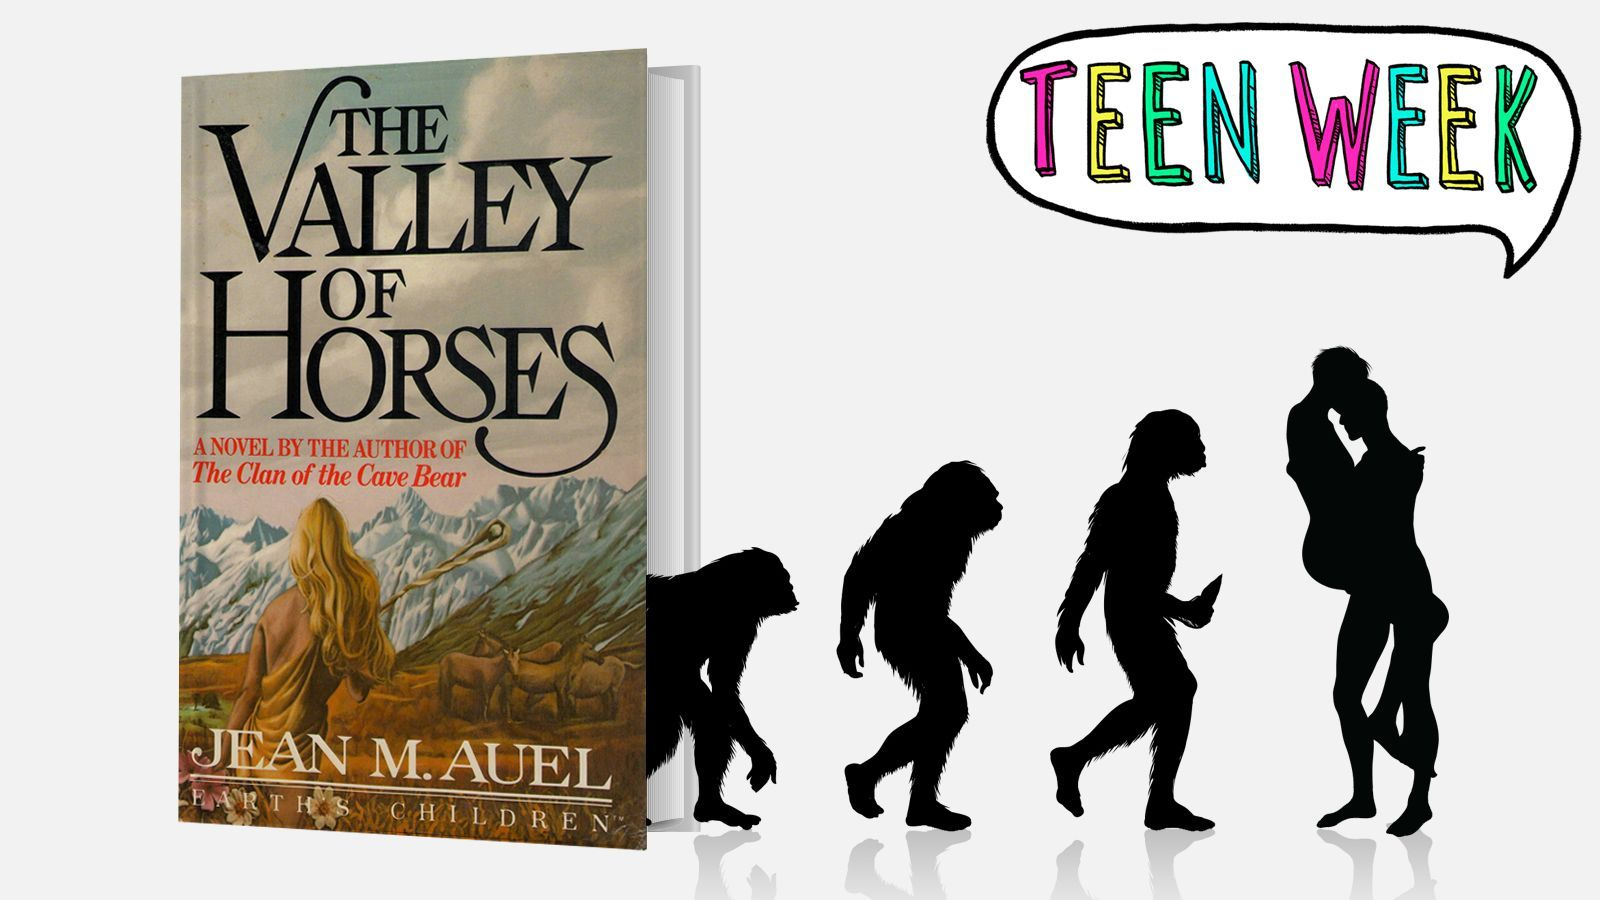 What A Bonkers Book About Horny Cave People Taught Me About My Own